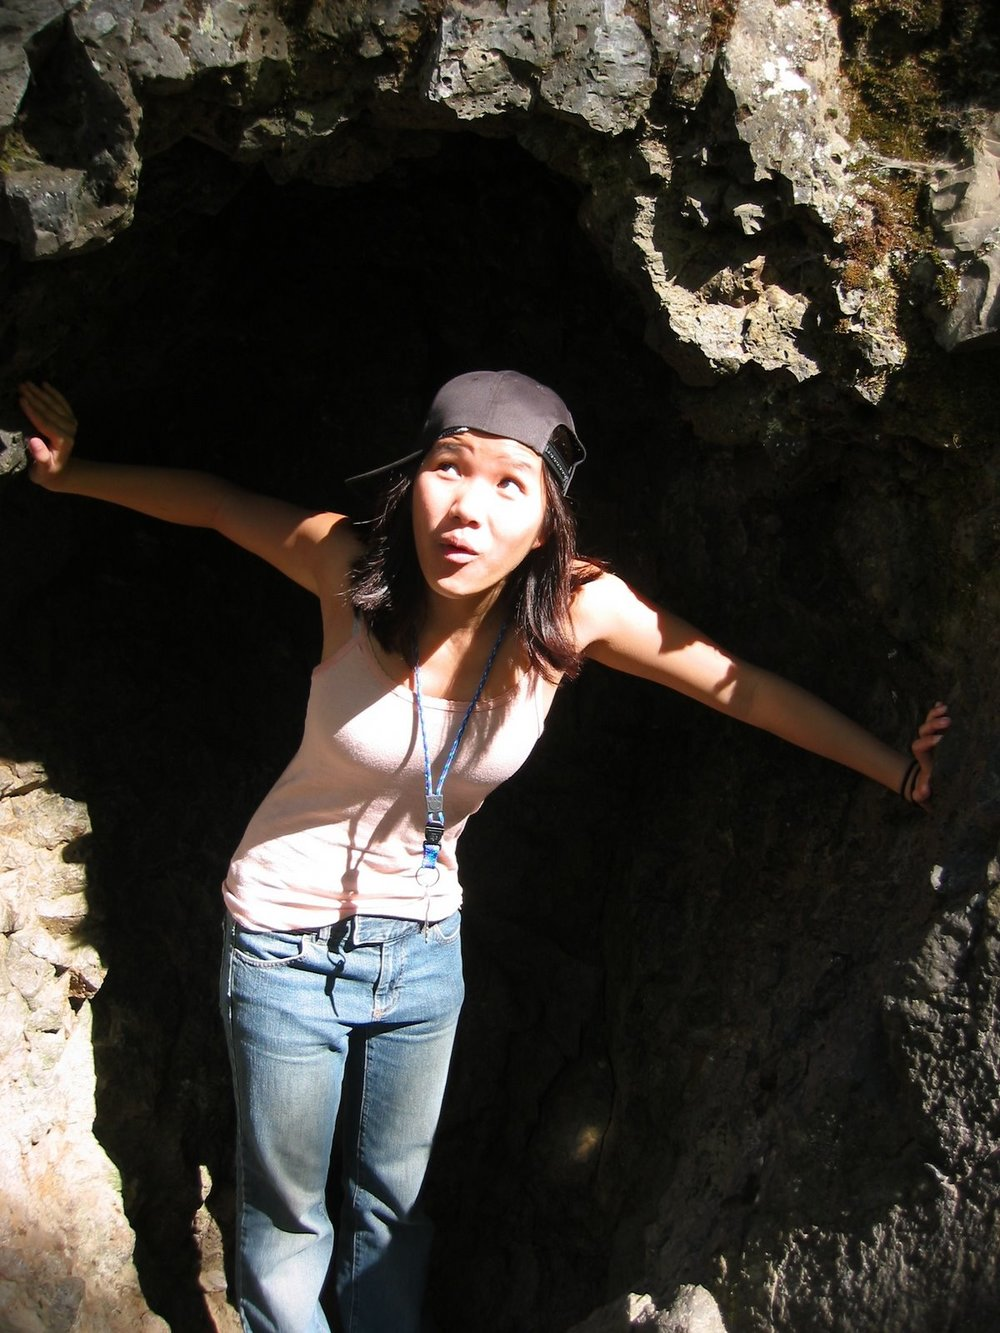 Jena hangs out in a cave in her baggy jeans and sideways baseball cap.